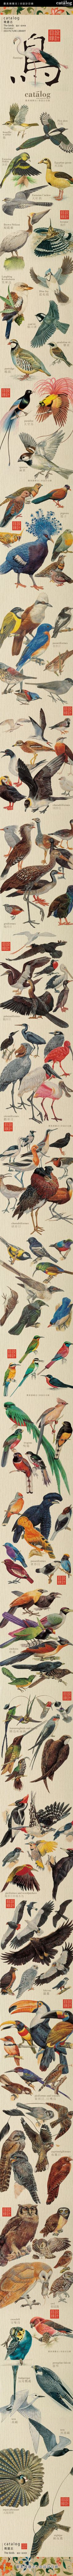 The Birds by DEA Picture Library ♥  #Illustration #Birds